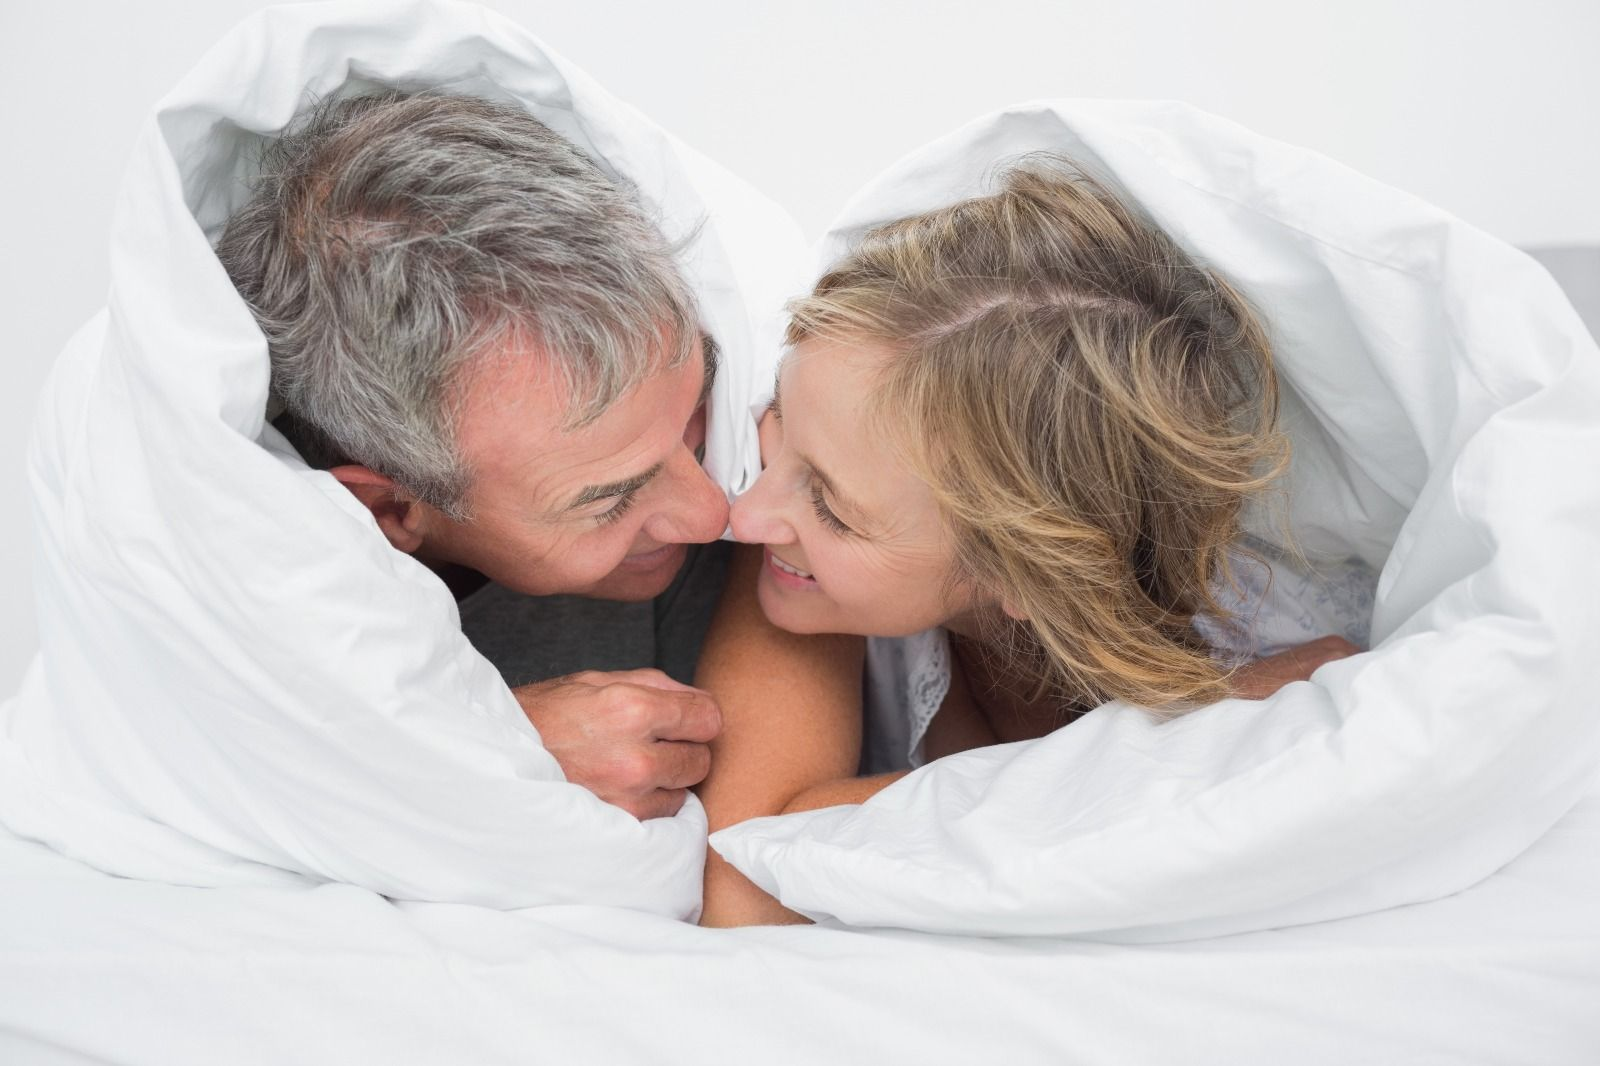 Sexual activity protects the brain from ageing